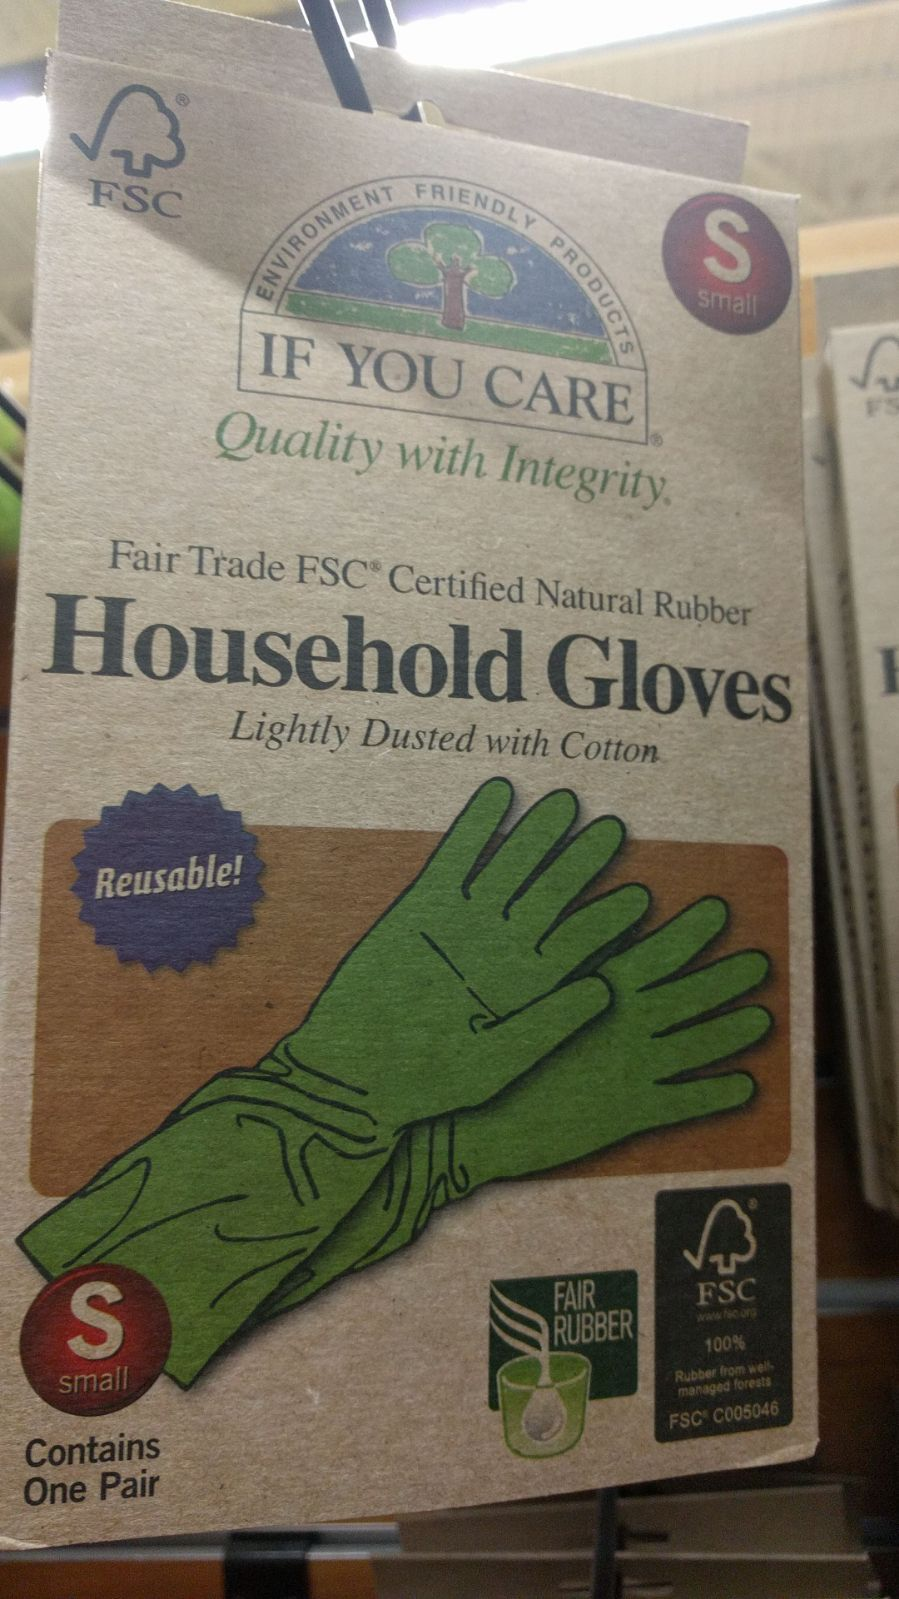 reusable household gloves made from Fair Trade FSC Certified Natural Rubber price: 3,57€/pair of gloves (comparison: Vileda 2,99€/pair of gloves)